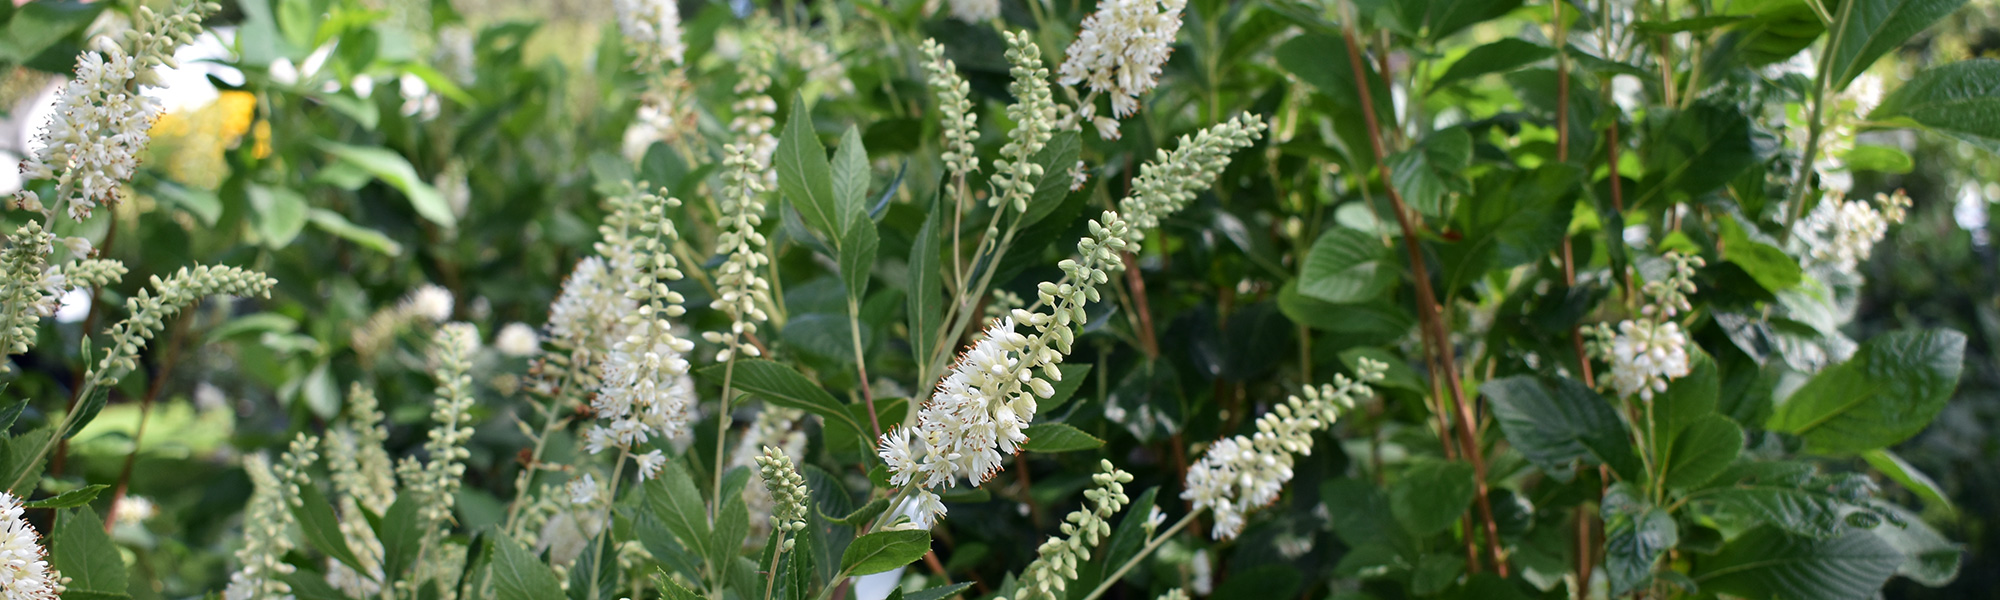 White clethra summersweet that can be pruned in spring